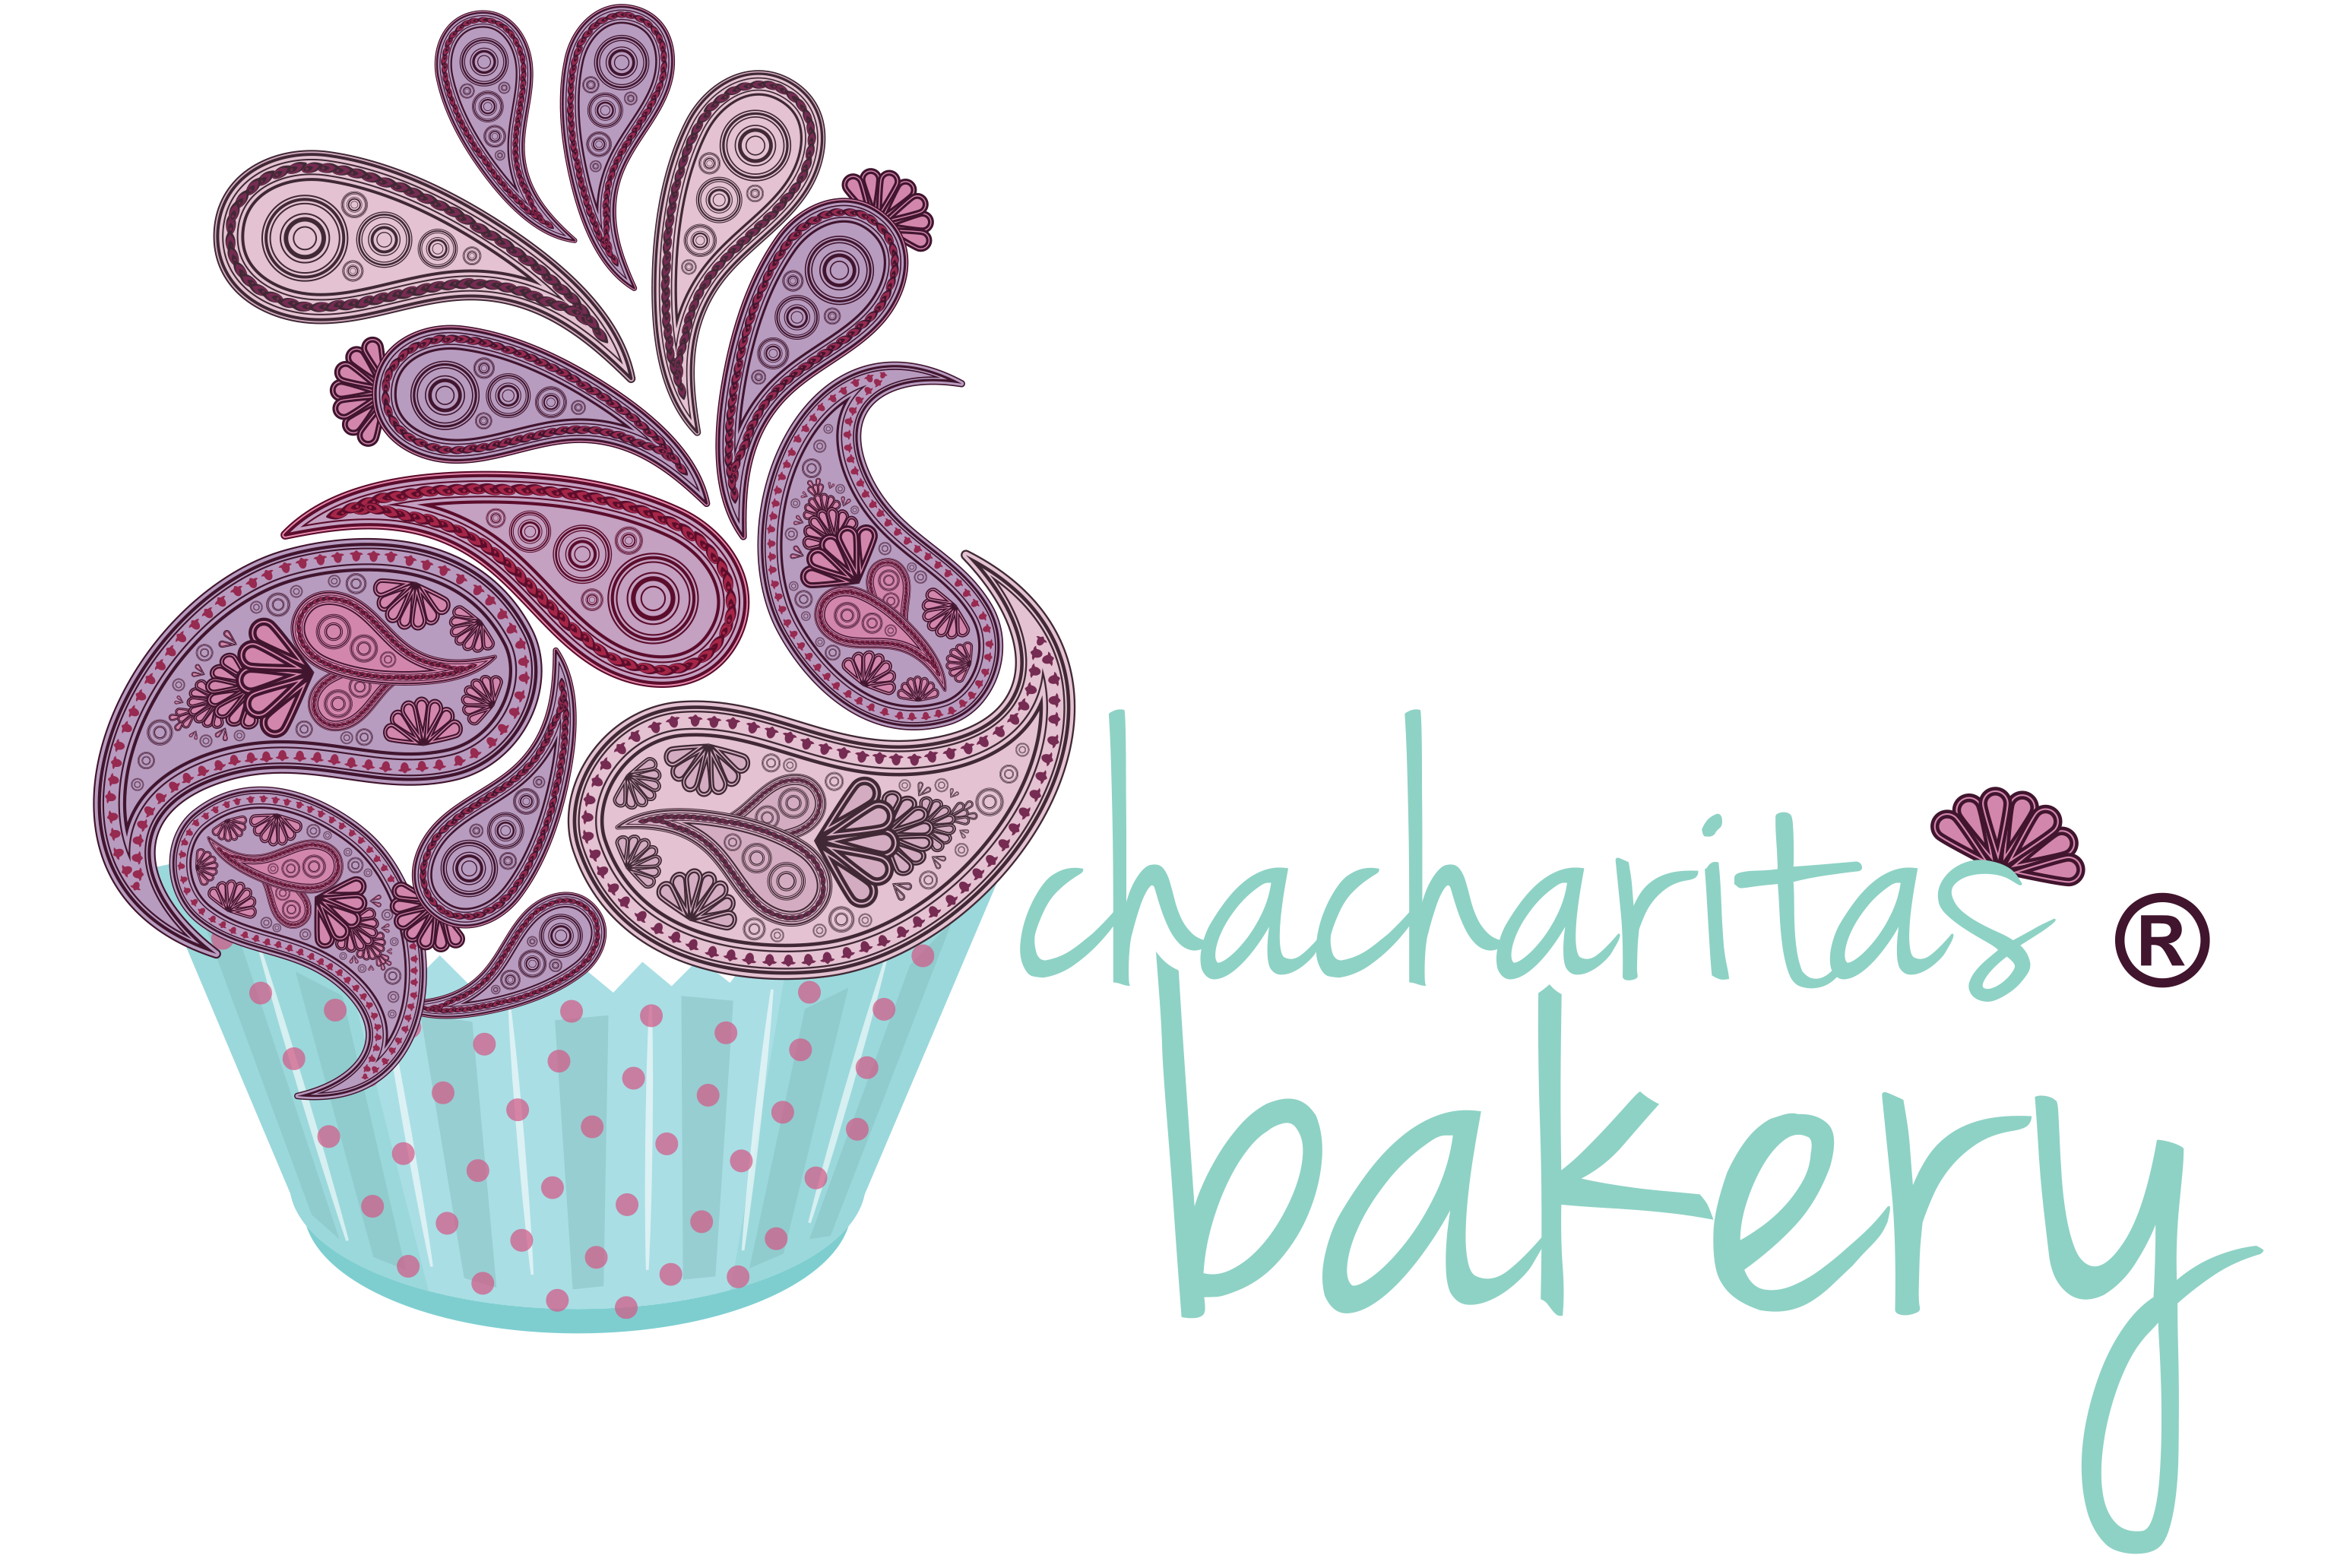 Chacharitas Bakery®